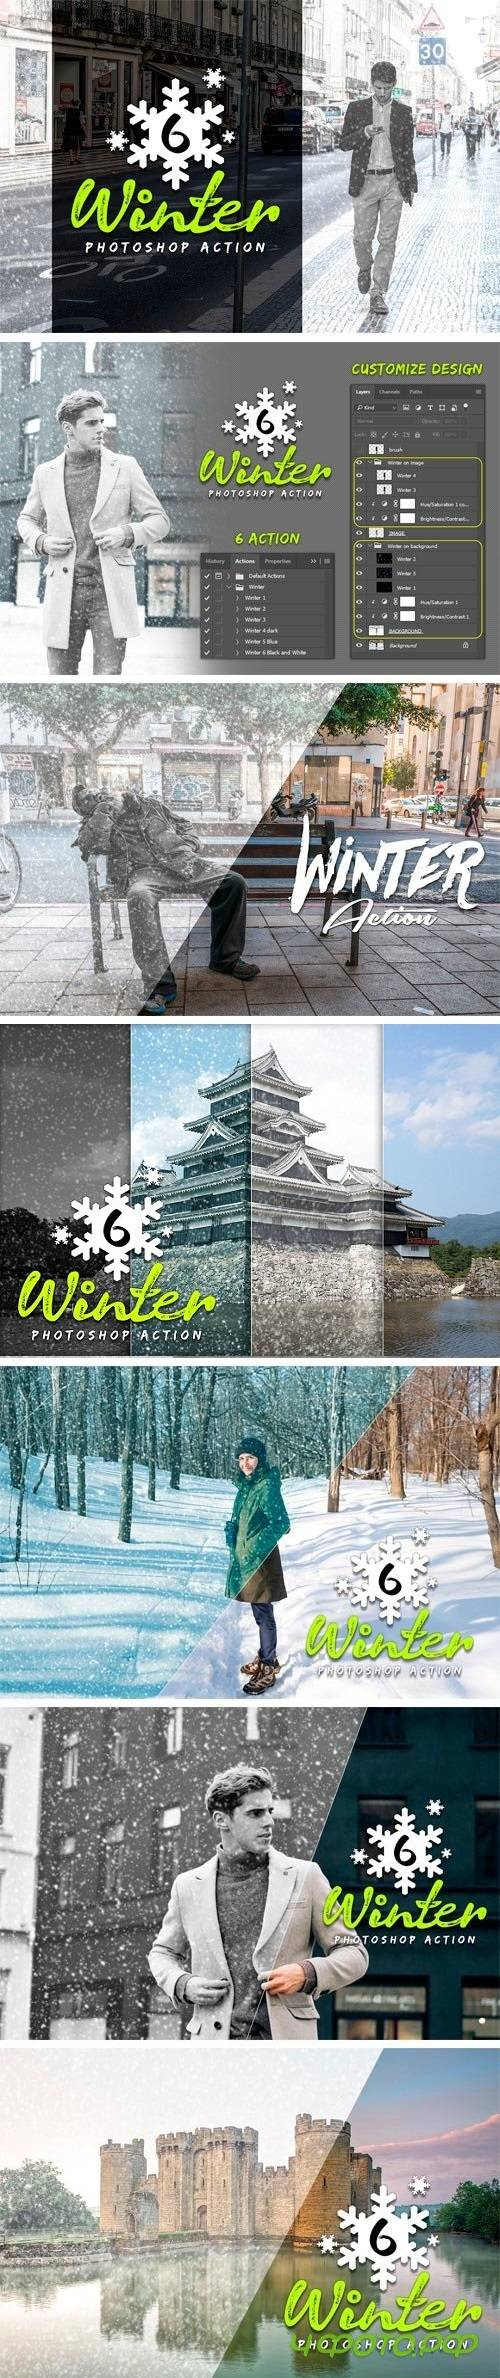 6 Winter Photoshop Action 2054937